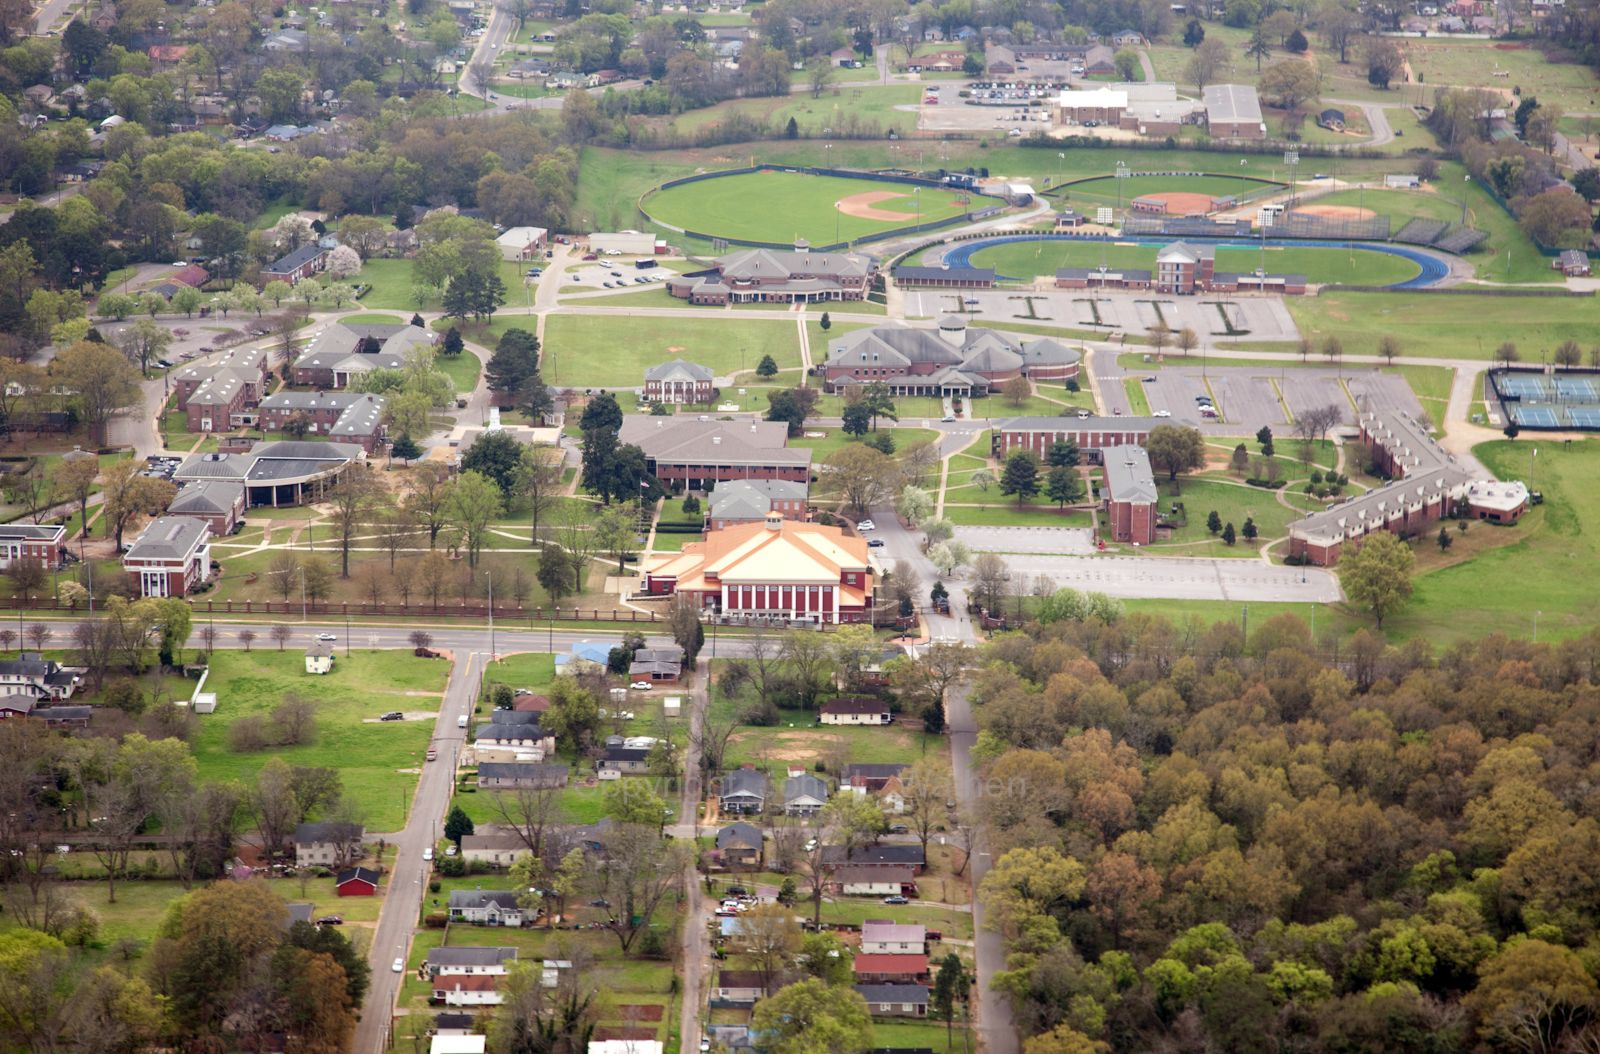 Alcorn State University Campus Map.Aerial View Stillman College Campus Hbcus Kentucky Tennessee